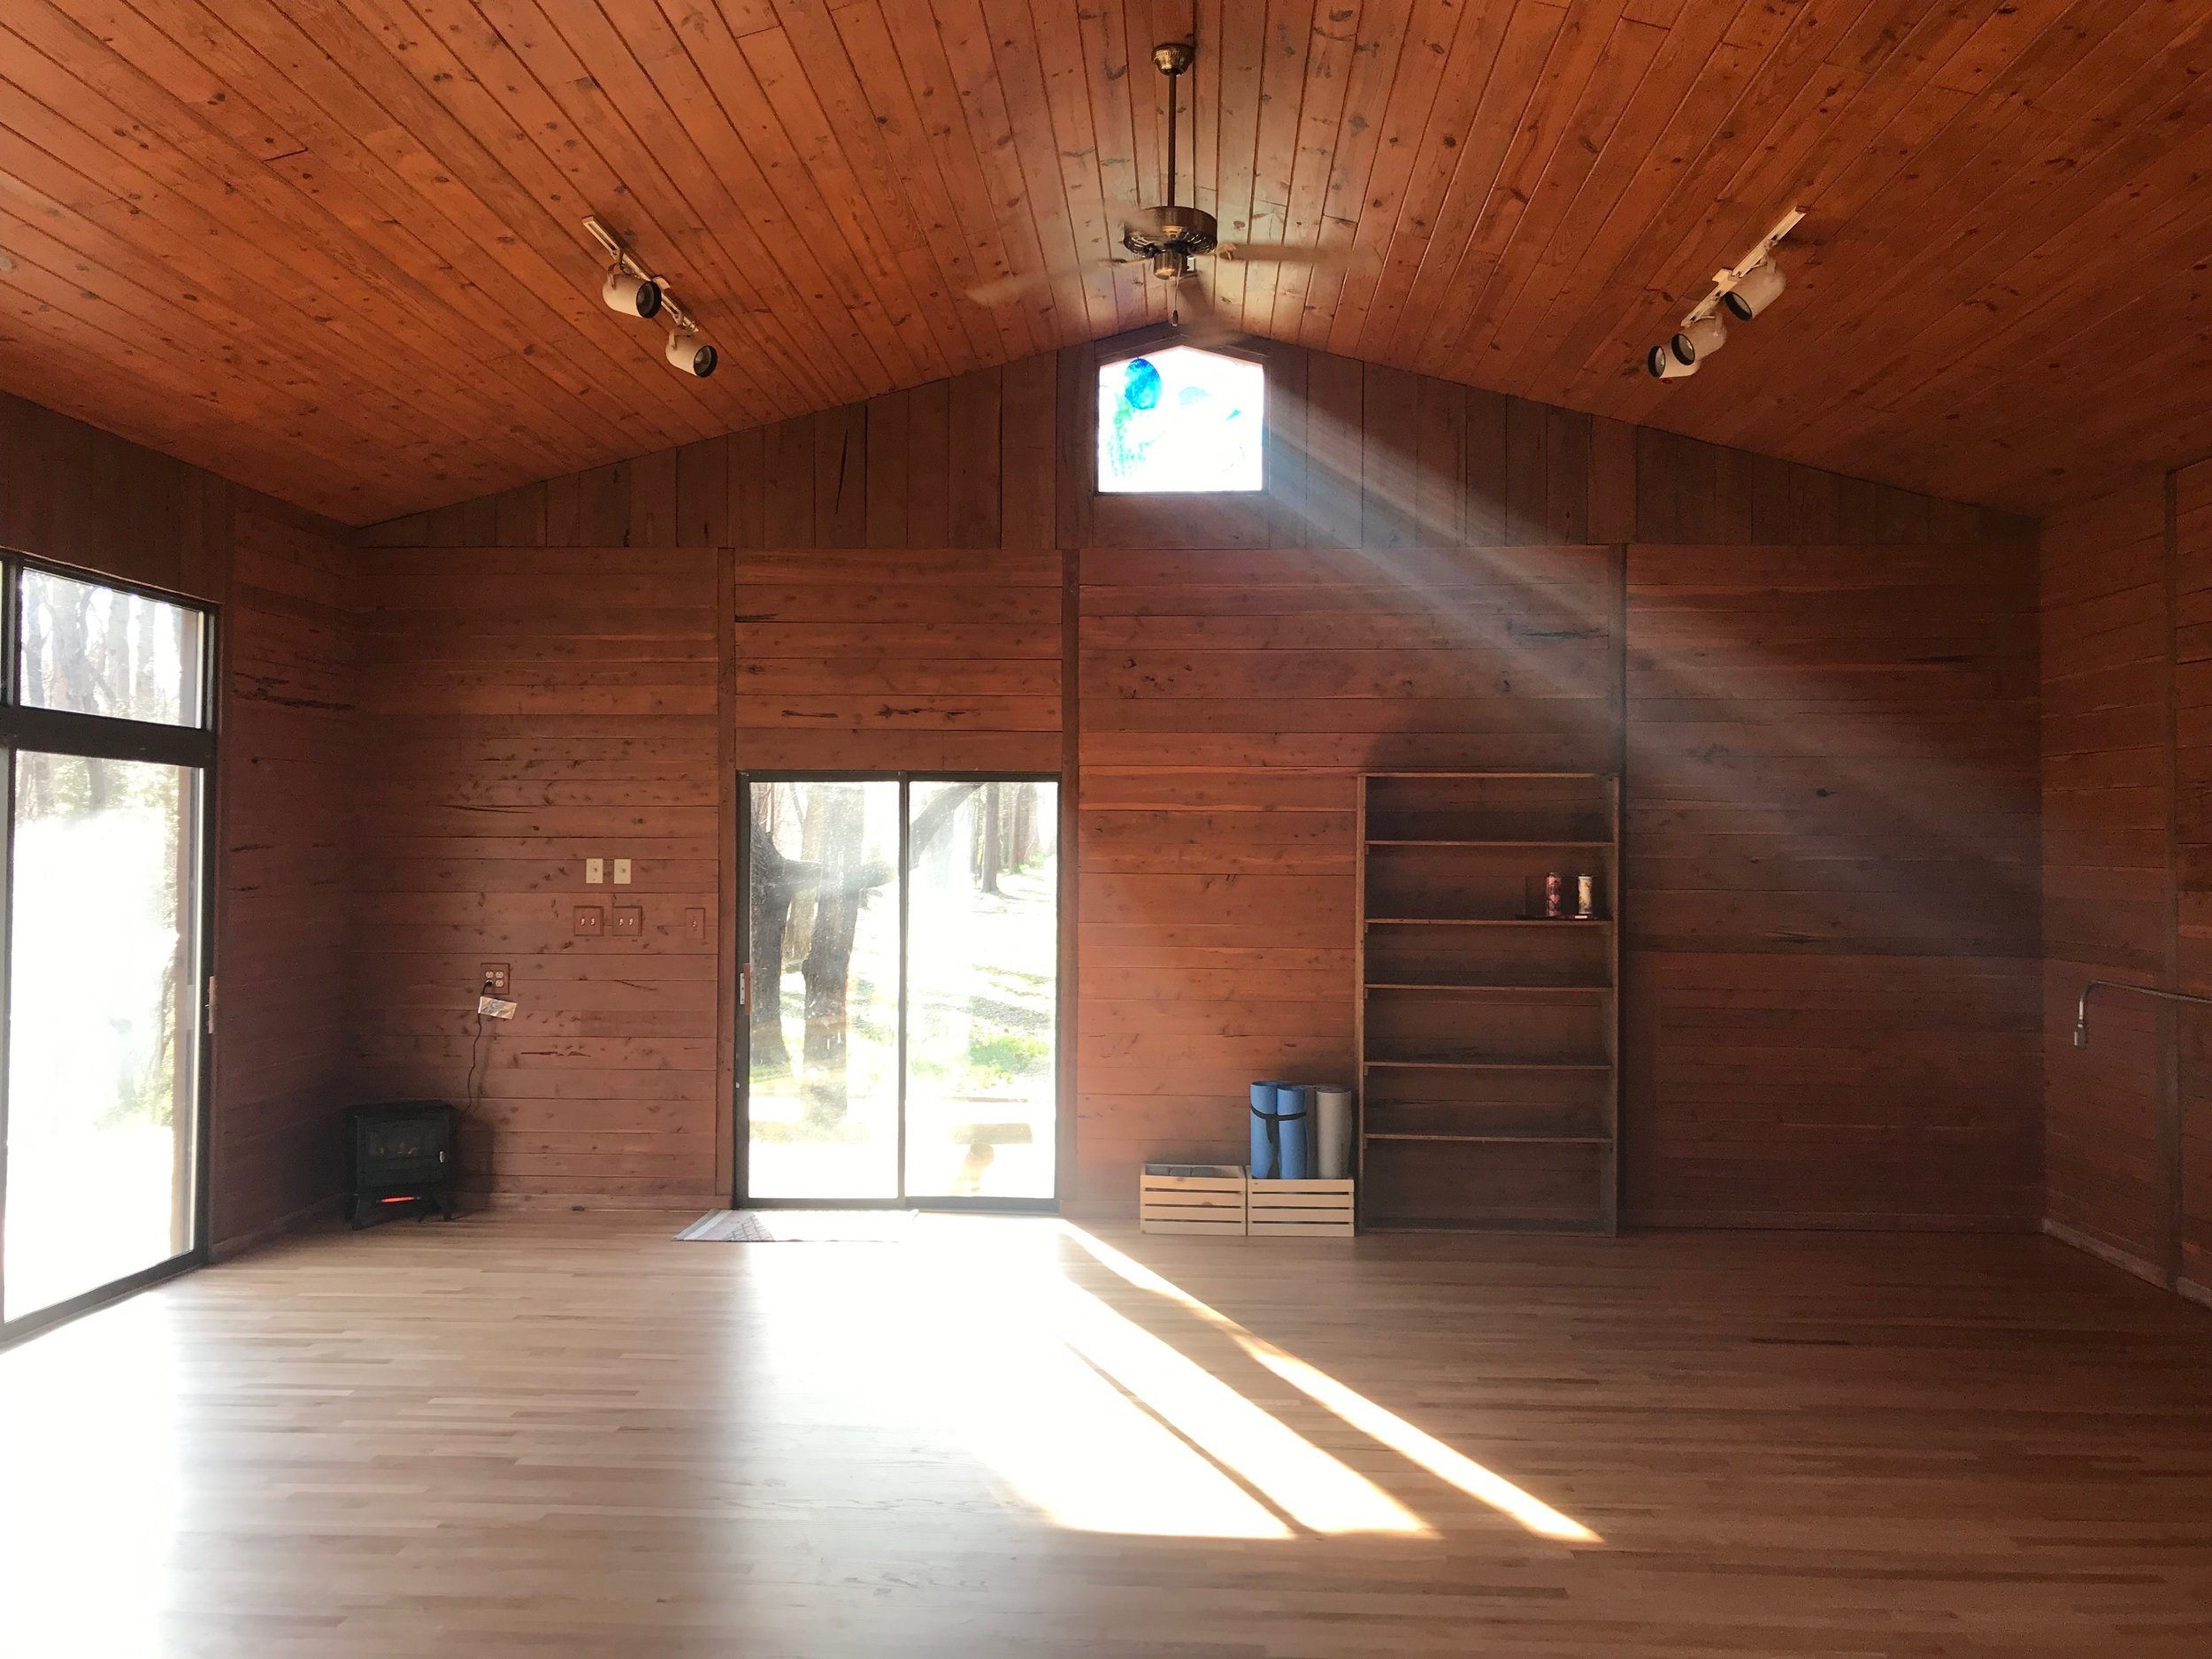 Inside the Yoga Studio